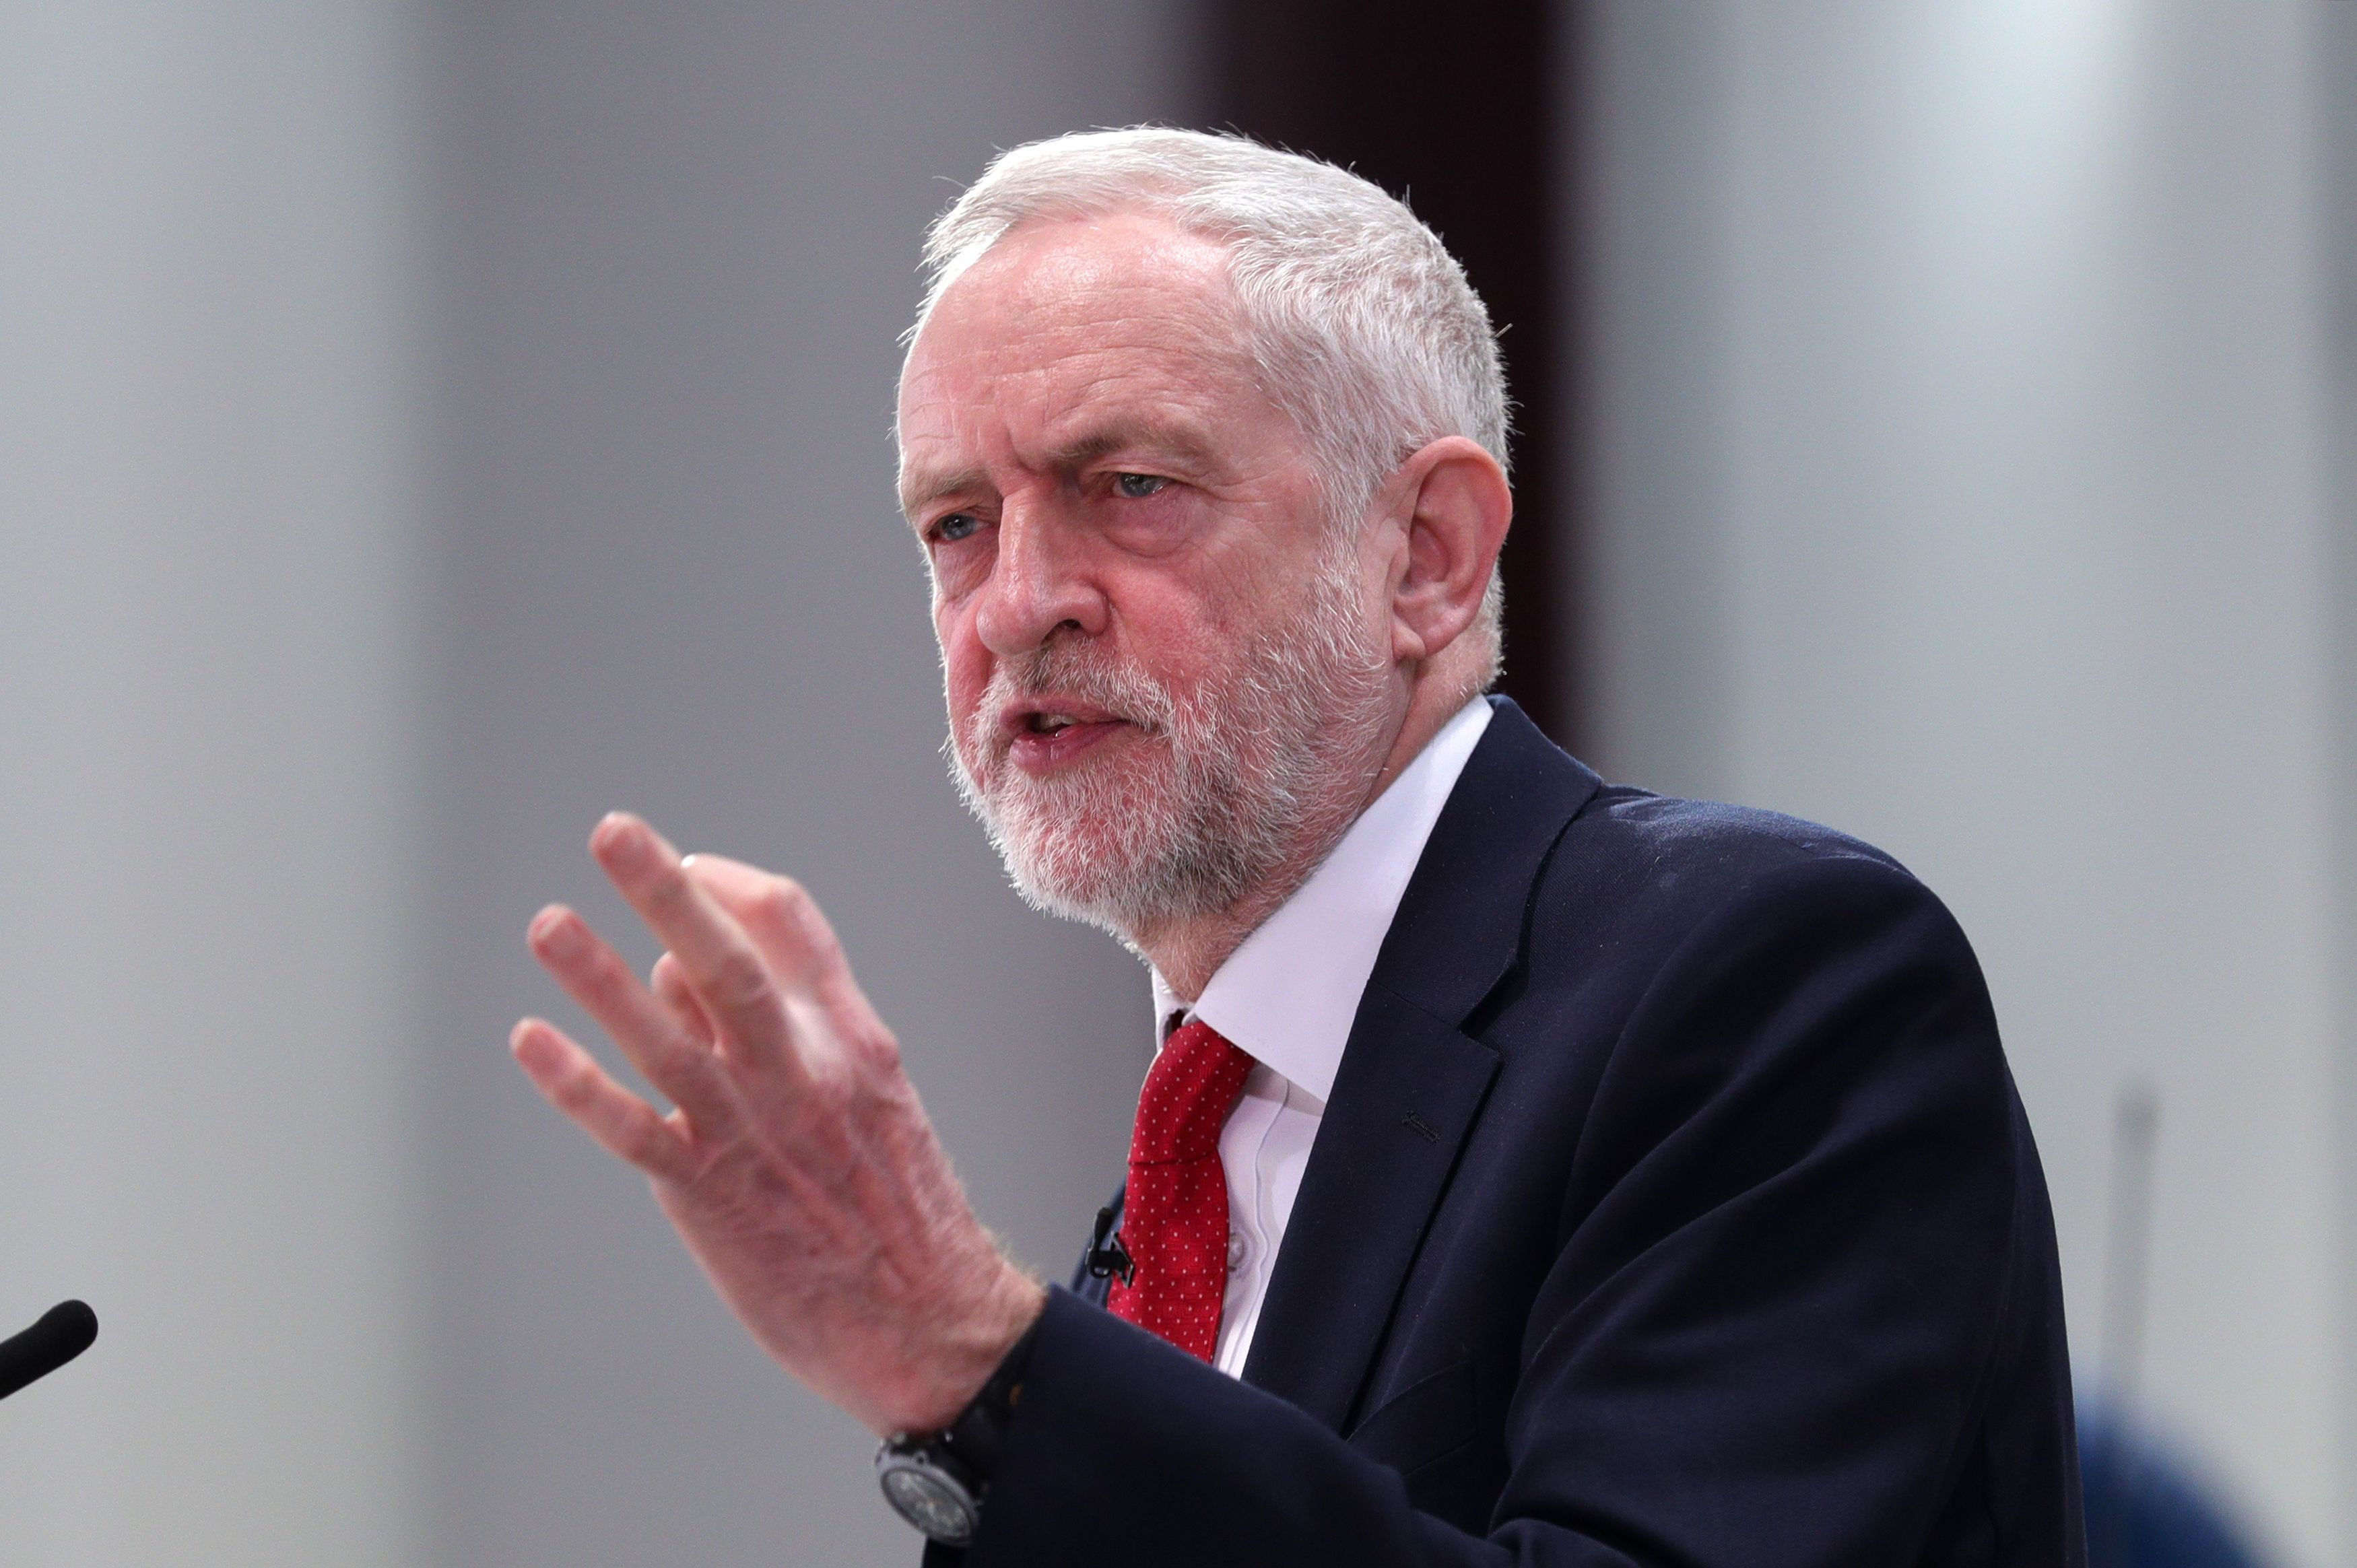 Corbyn named in Facebook hate group expose, as Labour suspends members